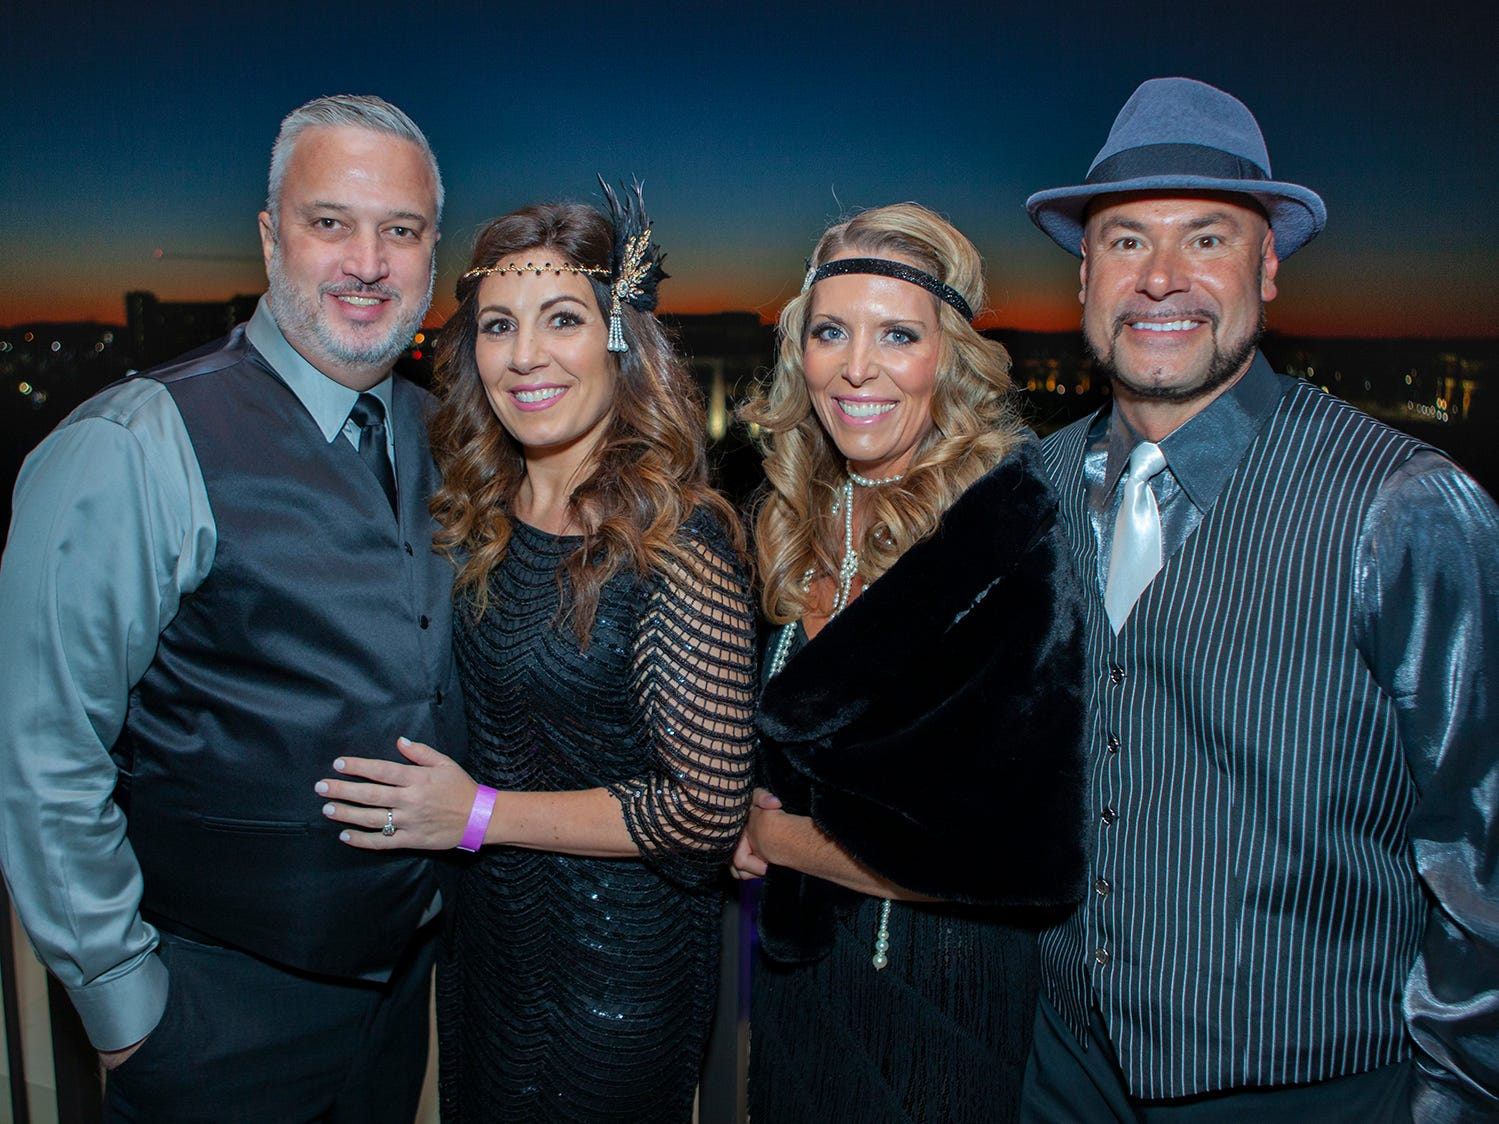 Stan and Monique Maclin with Amy and Chad Hill at The Gatsby Party, hosted by the Alzheimer's Association at The View at Fountains Saturday, March 16, 2019.